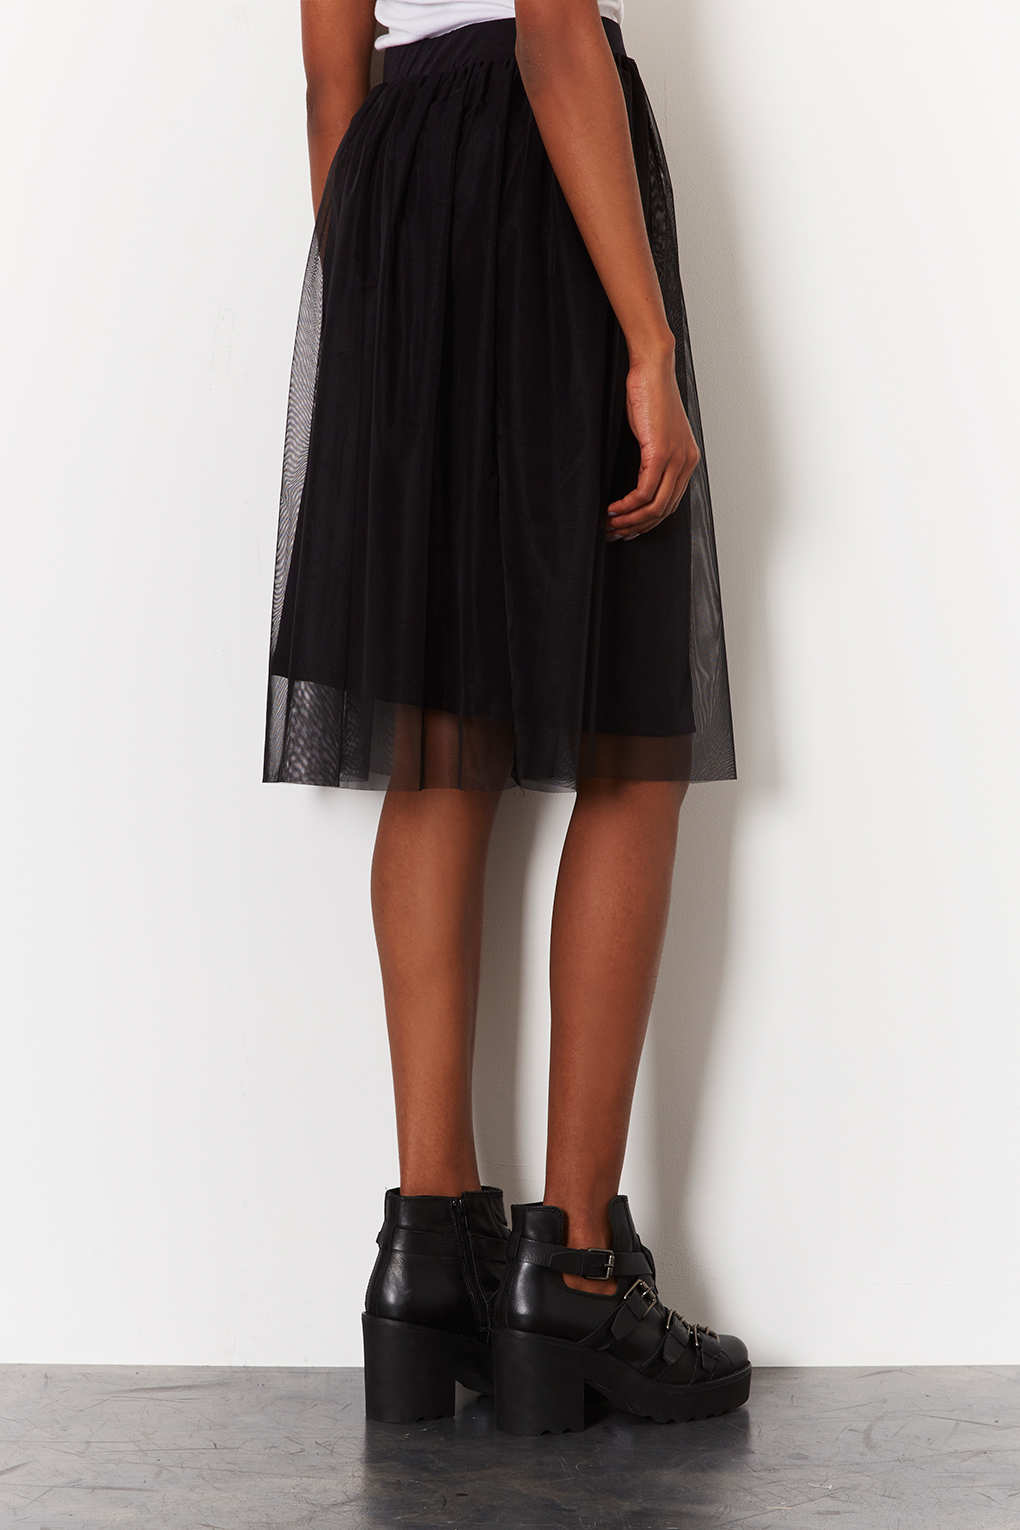 Lyst Topshop Black Midi Tulle Skirt In Black